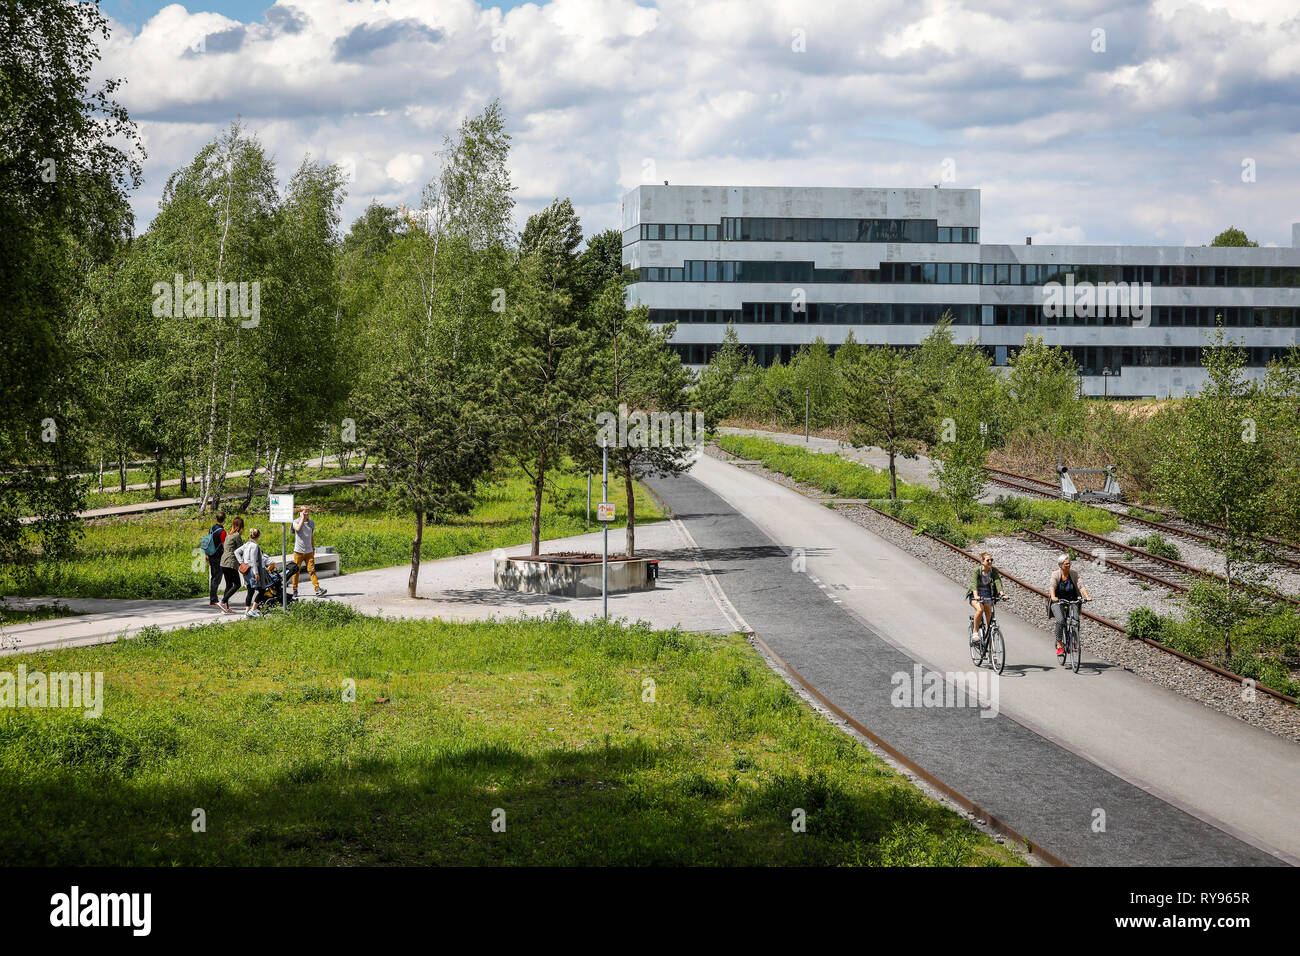 Essen, Ruhr area, North Rhine-Westphalia, Germany - Zollverein Park on the site of the Zollverein colliery, in the background the new Folkwang Univers - Stock Image